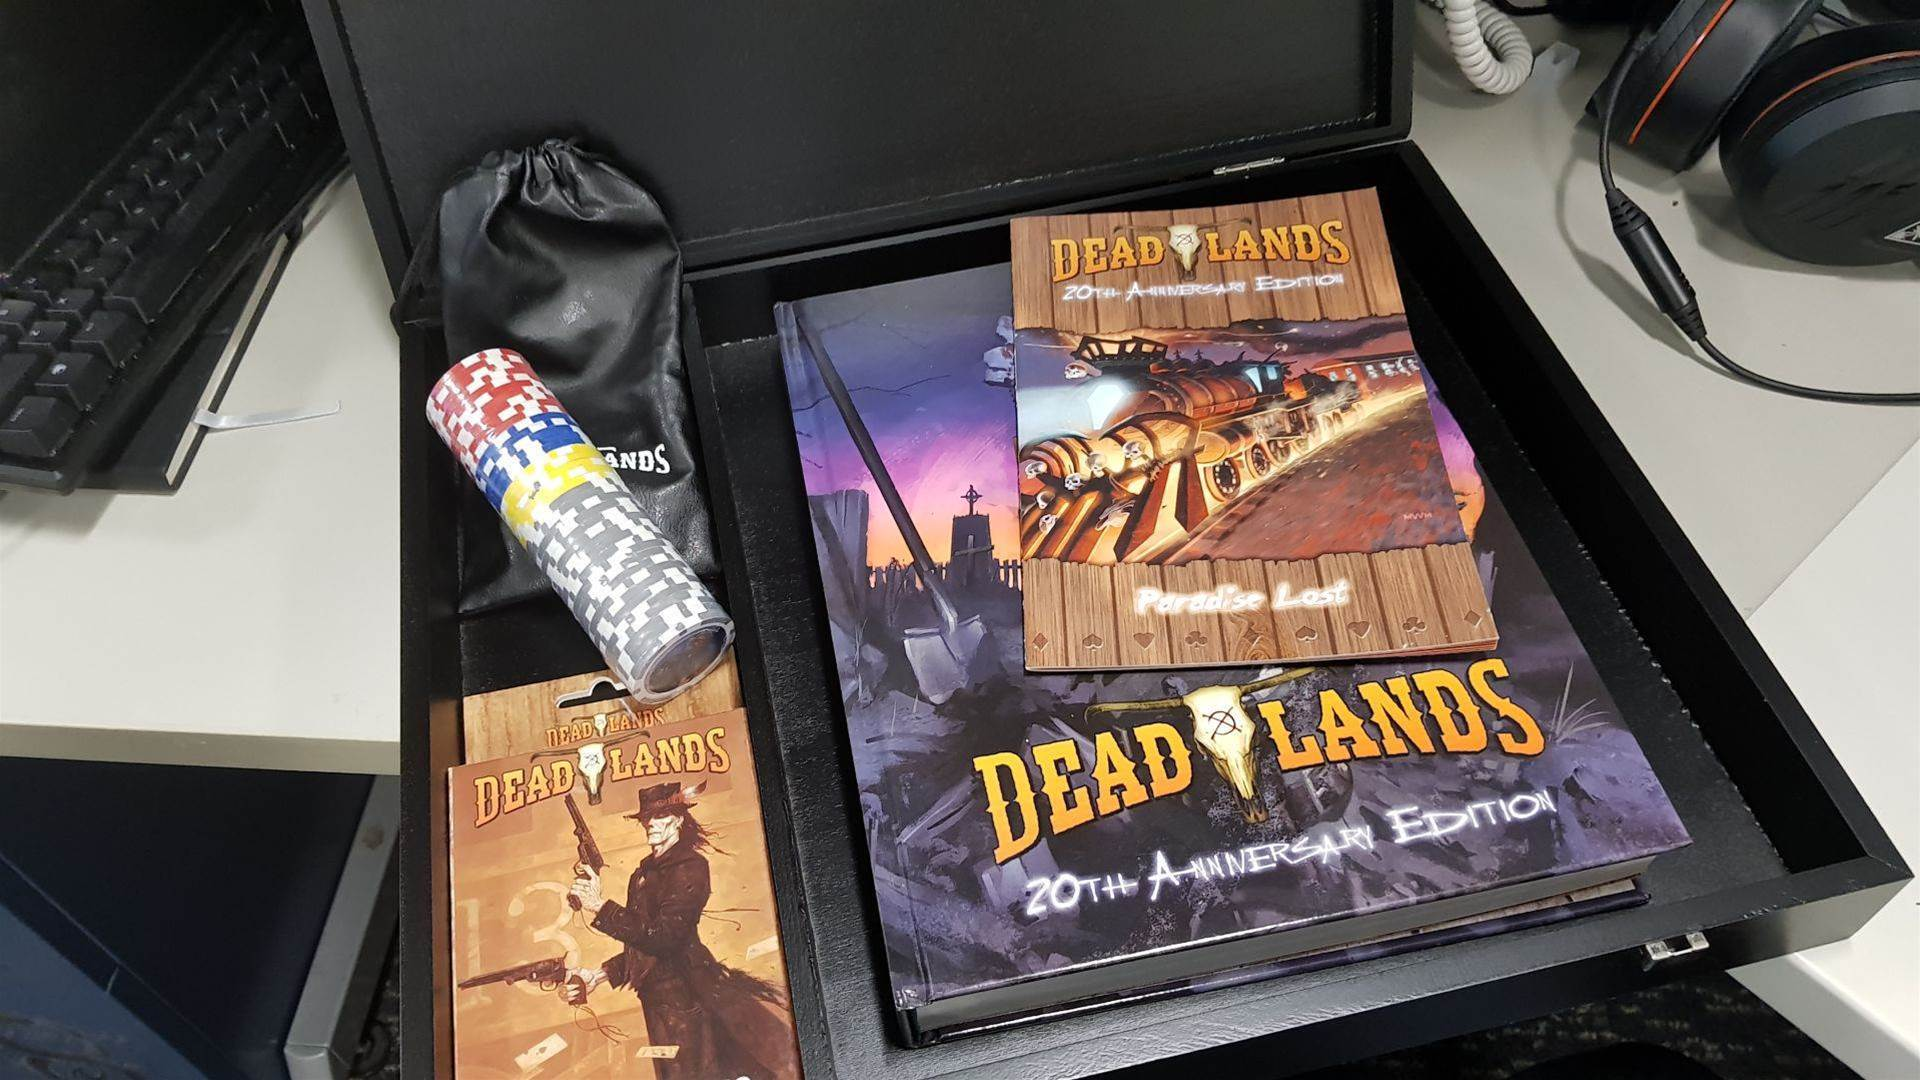 Deadlands 20th Anniversary Edition Kickstarter package